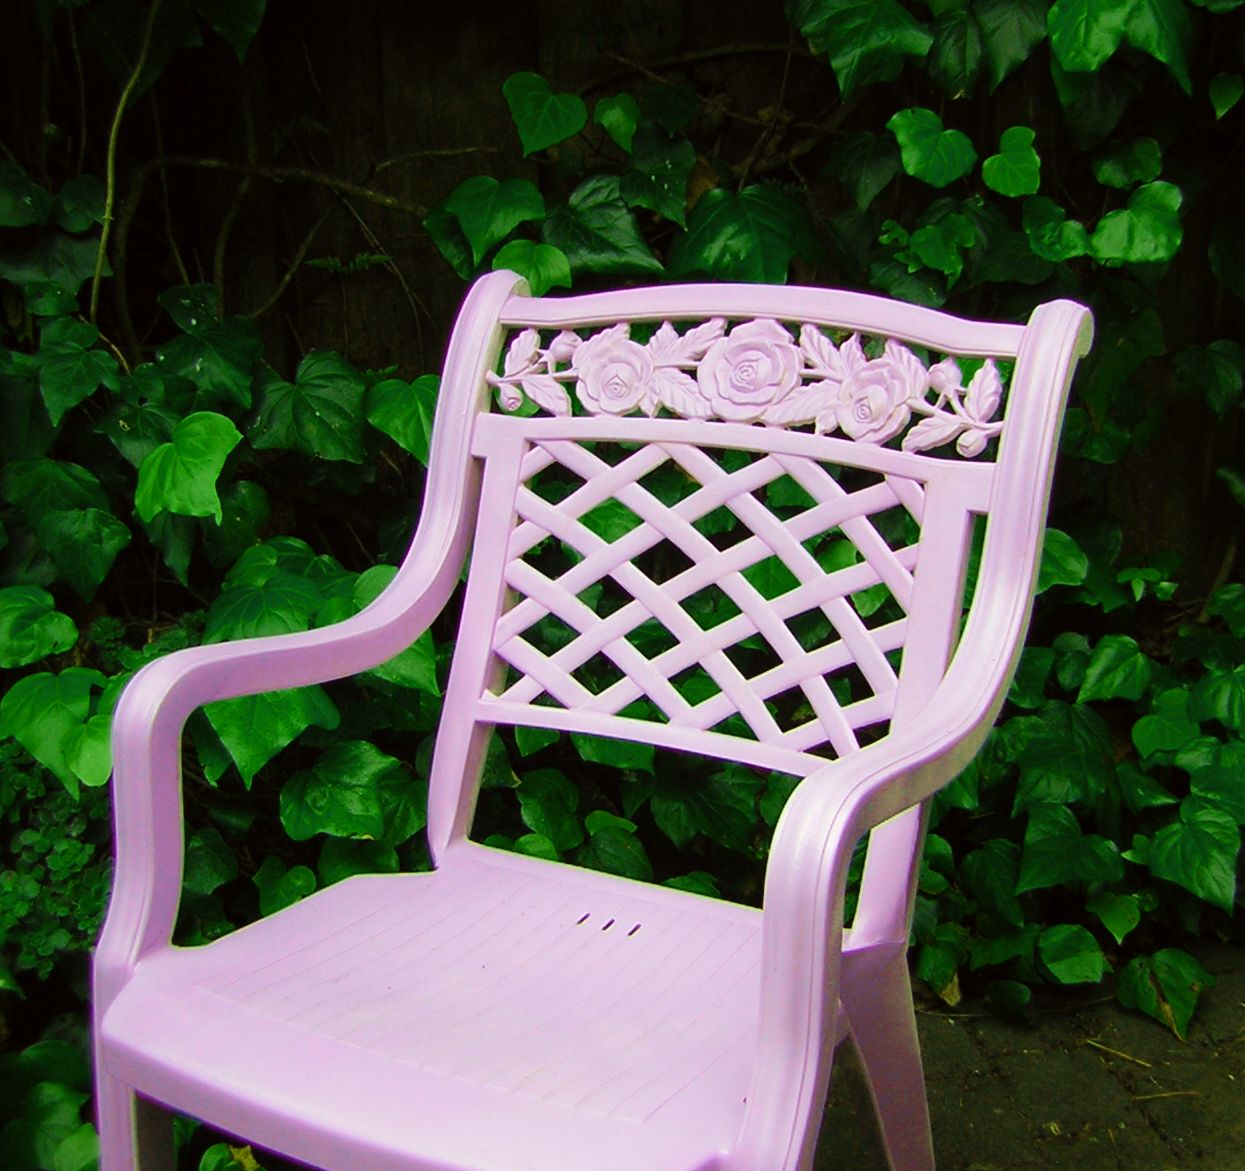 Lavender Chair Terra Garden Pretty Lavender Chair